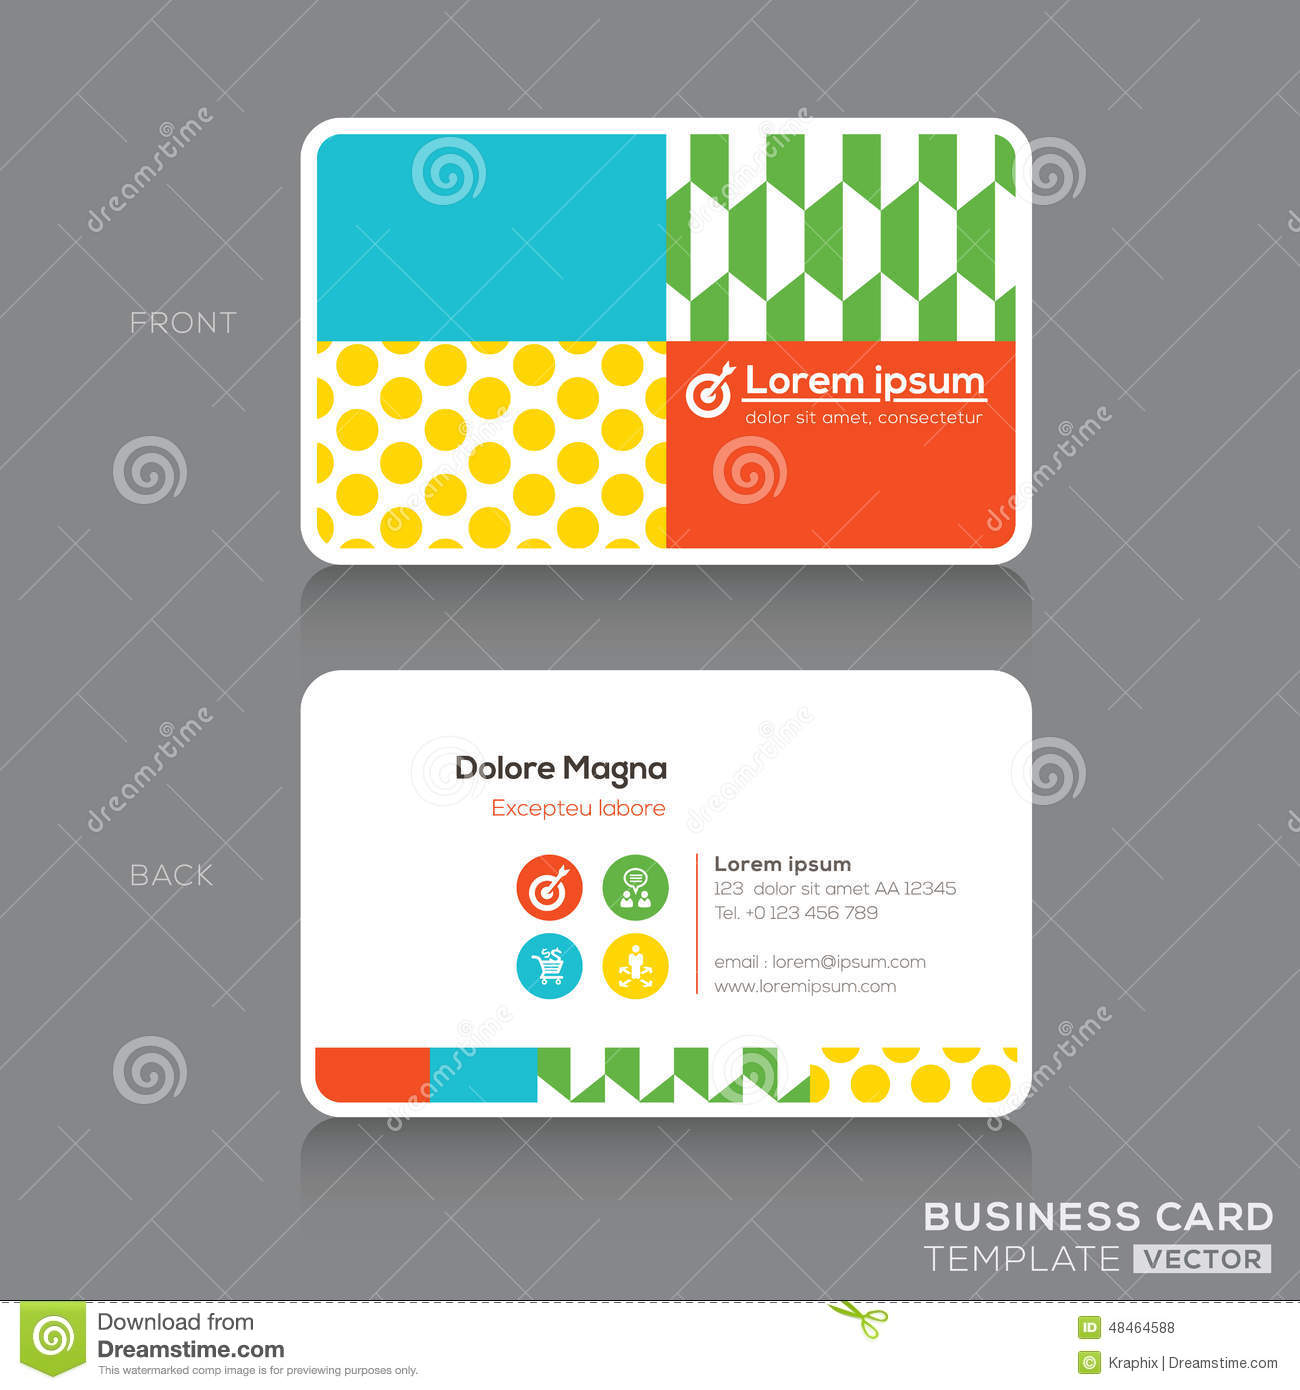 Modern business card design template stock vector illustration modern business card design template royalty free vector alramifo Image collections